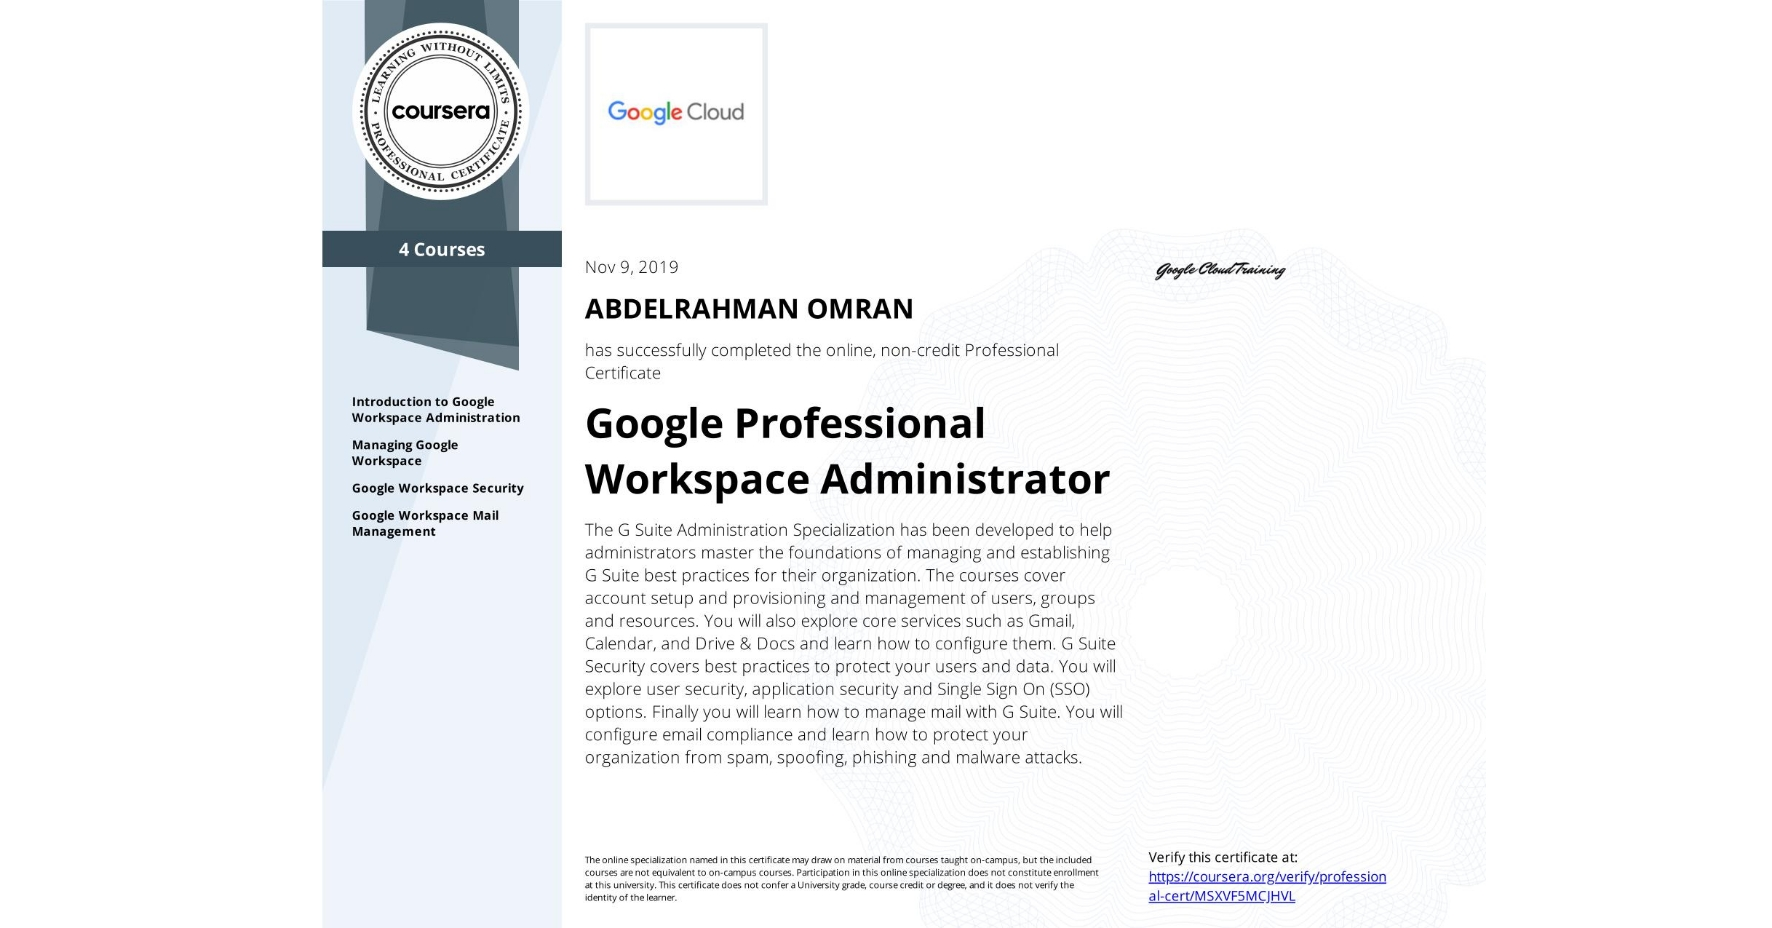 View certificate for ABDELRAHMAN OMRAN, Google Workspace Administration, offered through Coursera. The G Suite Administration Specialization has been developed to help administrators master the foundations of managing and establishing G Suite best practices for their organization.  The courses cover account setup and provisioning and management of users, groups and resources. You will also explore core services such as Gmail, Calendar, and Drive & Docs and learn how to configure them.  G Suite Security covers best practices to protect your users and data. You will explore user security, application security and Single Sign On (SSO) options.  Finally you will learn how to manage mail with G Suite. You will configure email compliance and learn how to protect your organization from spam, spoofing, phishing and malware attacks.